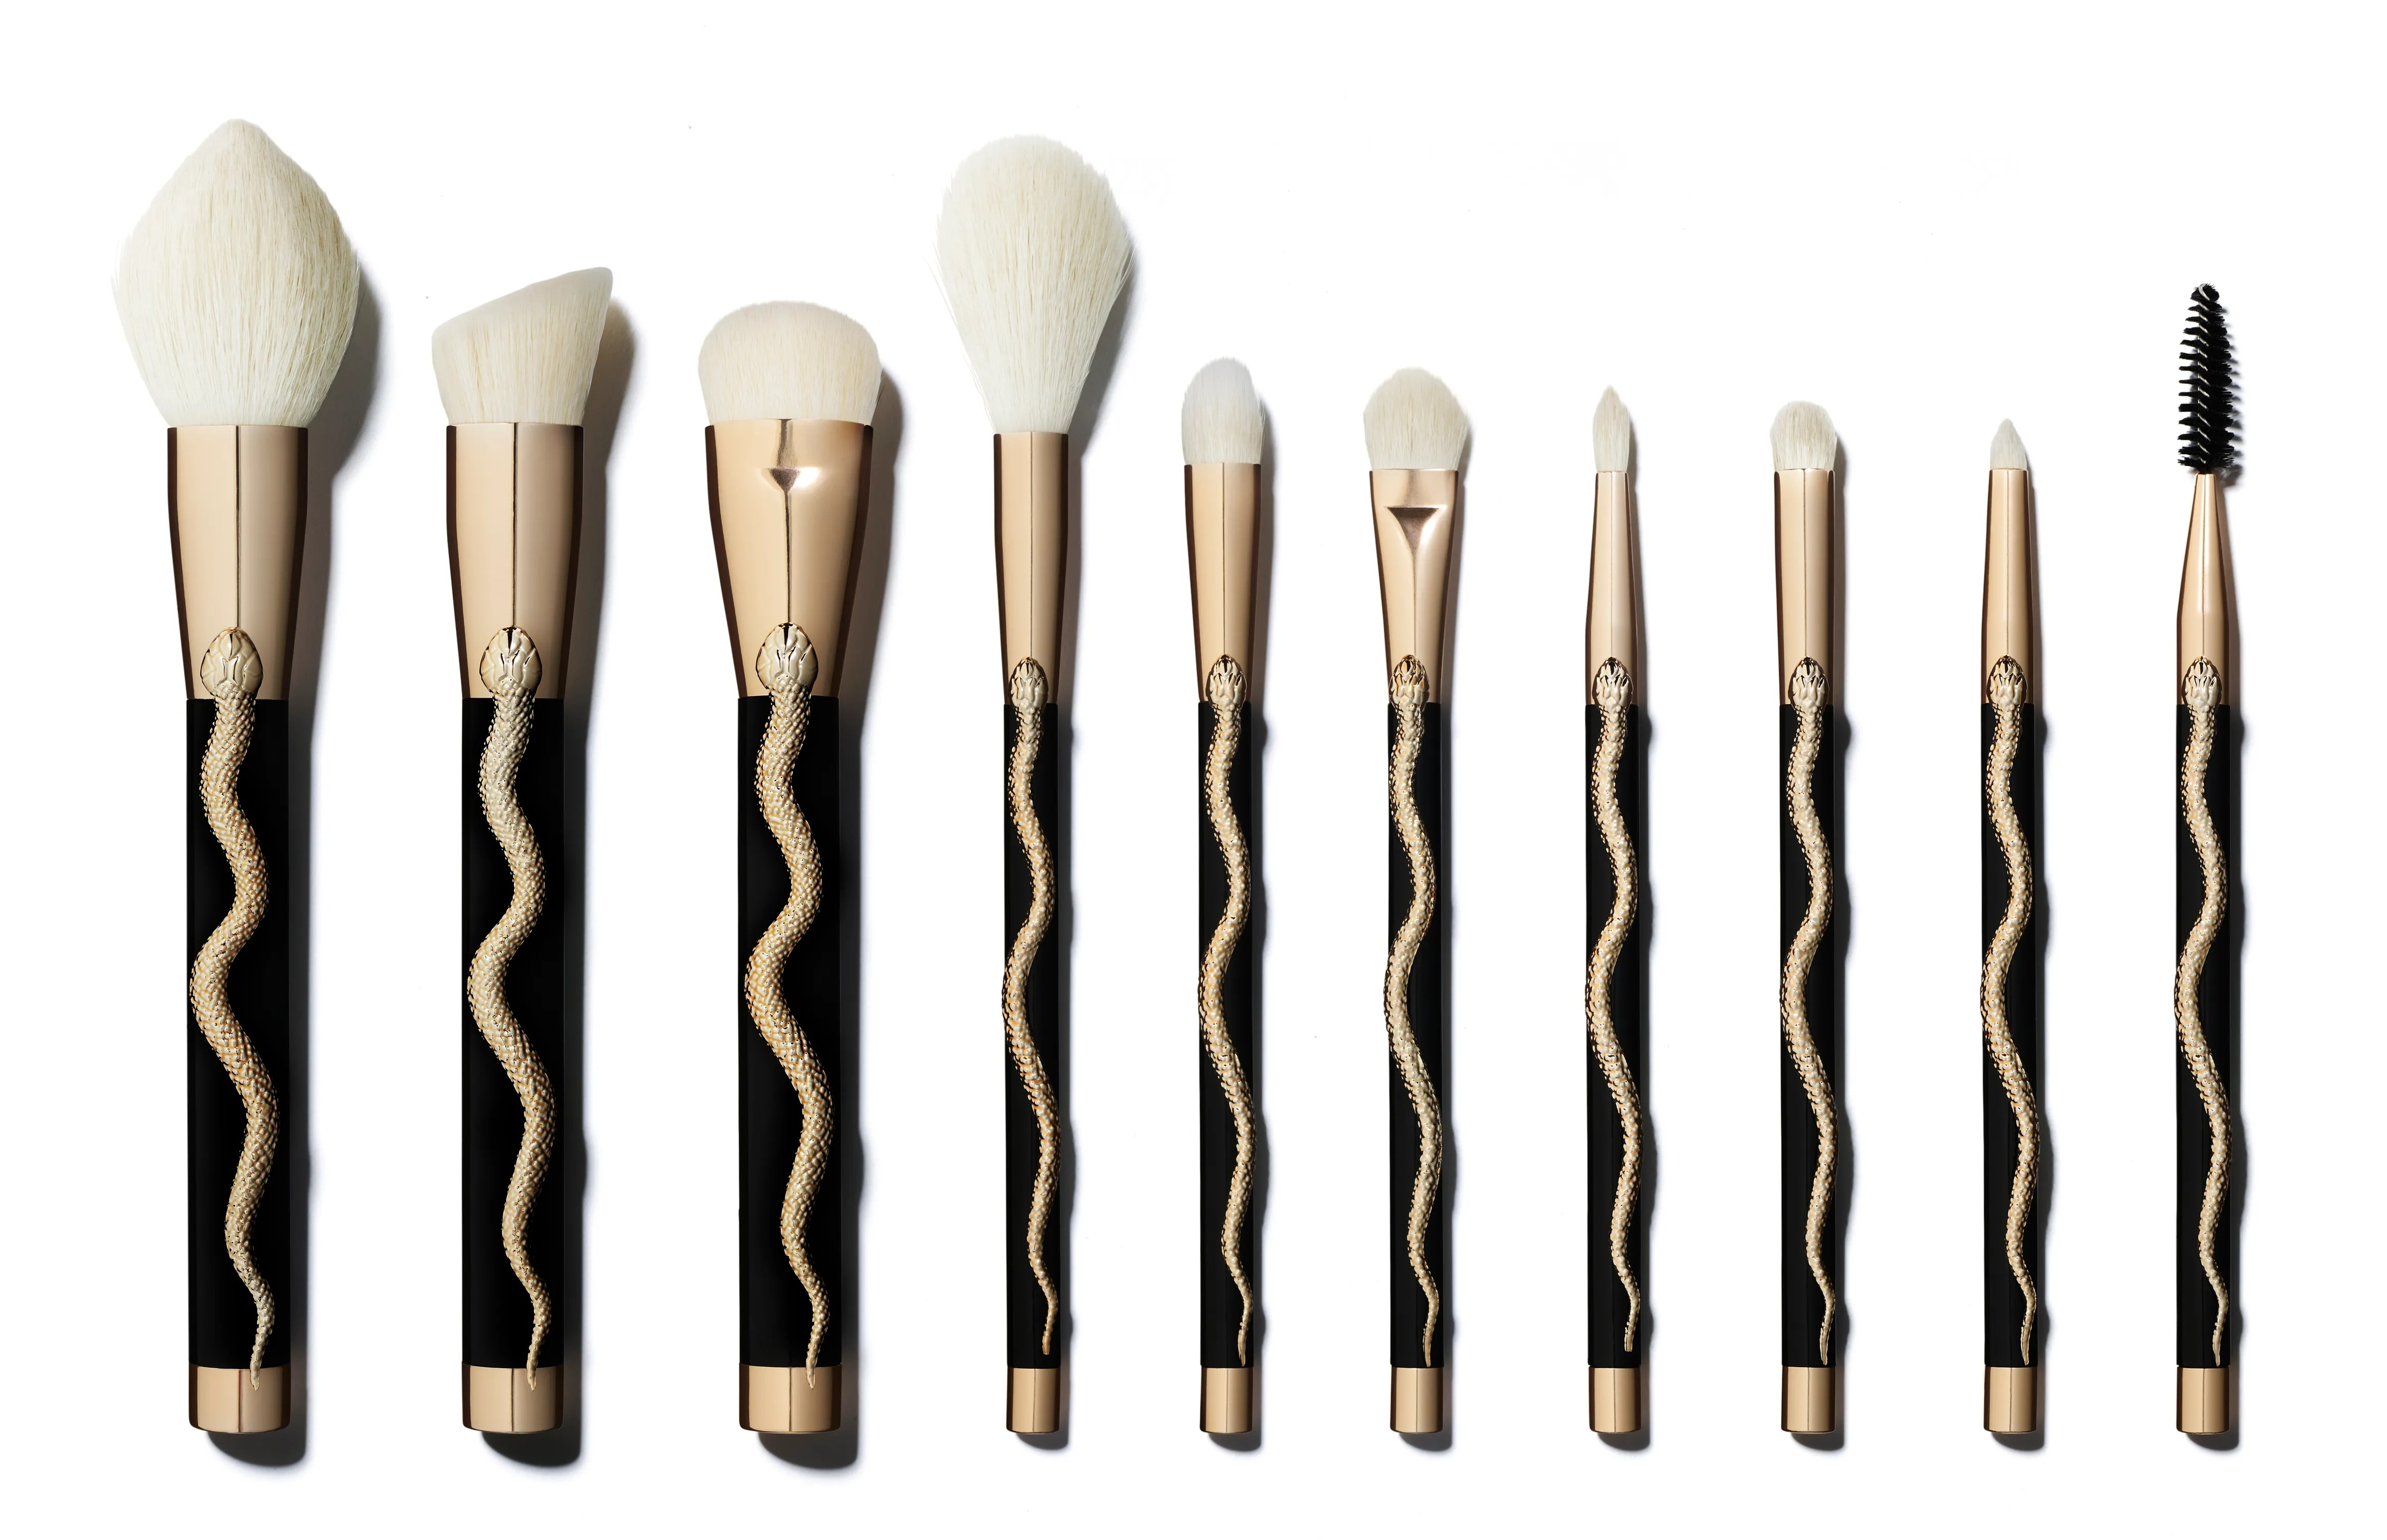 The Upcoming Sonia Kashuk Sonias Serpent 10 Piece Brush